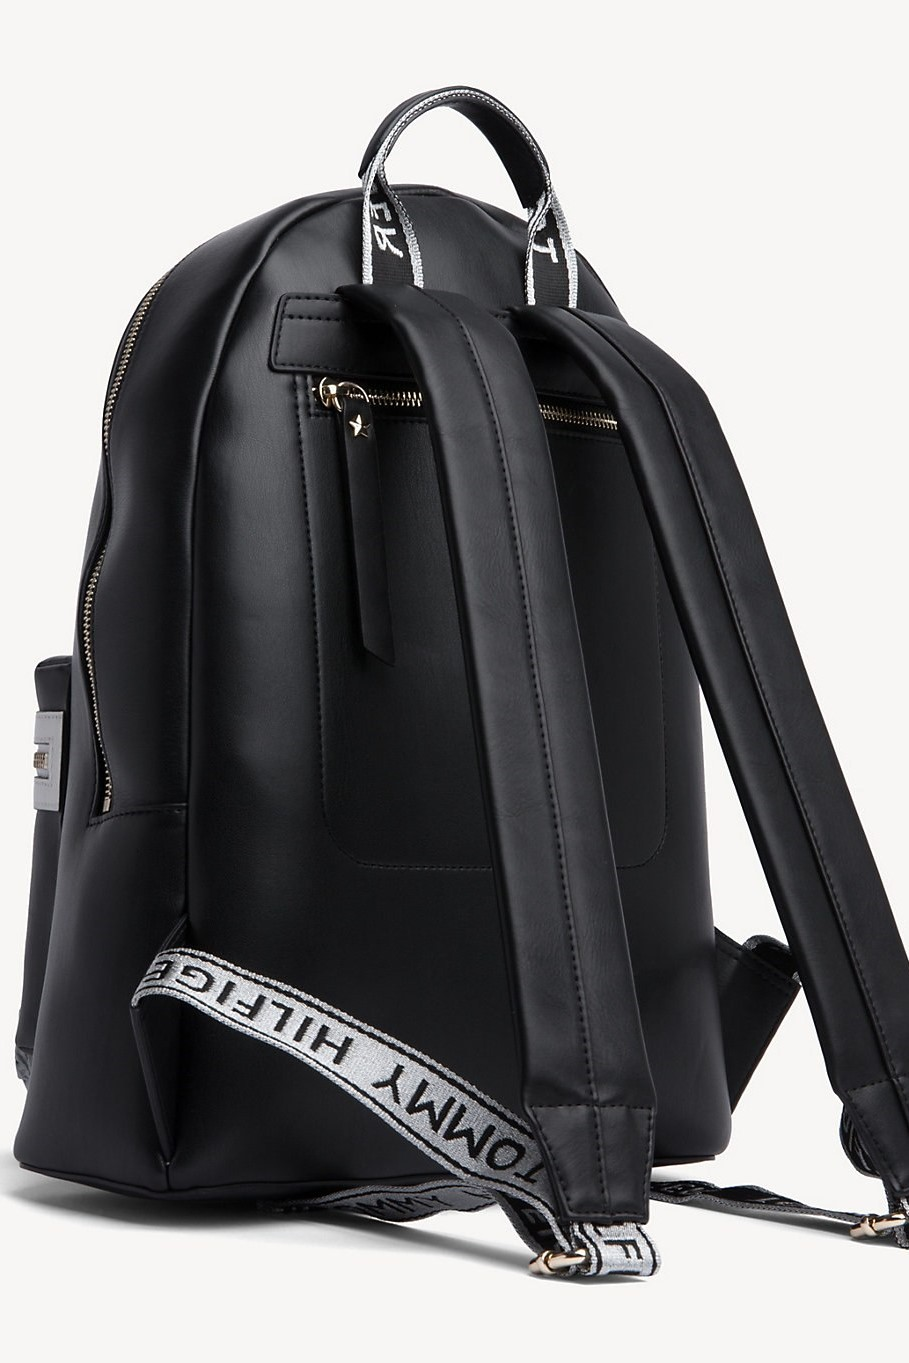 Tommy Hilfiger černý batoh Iconic Tommy Backpack Black